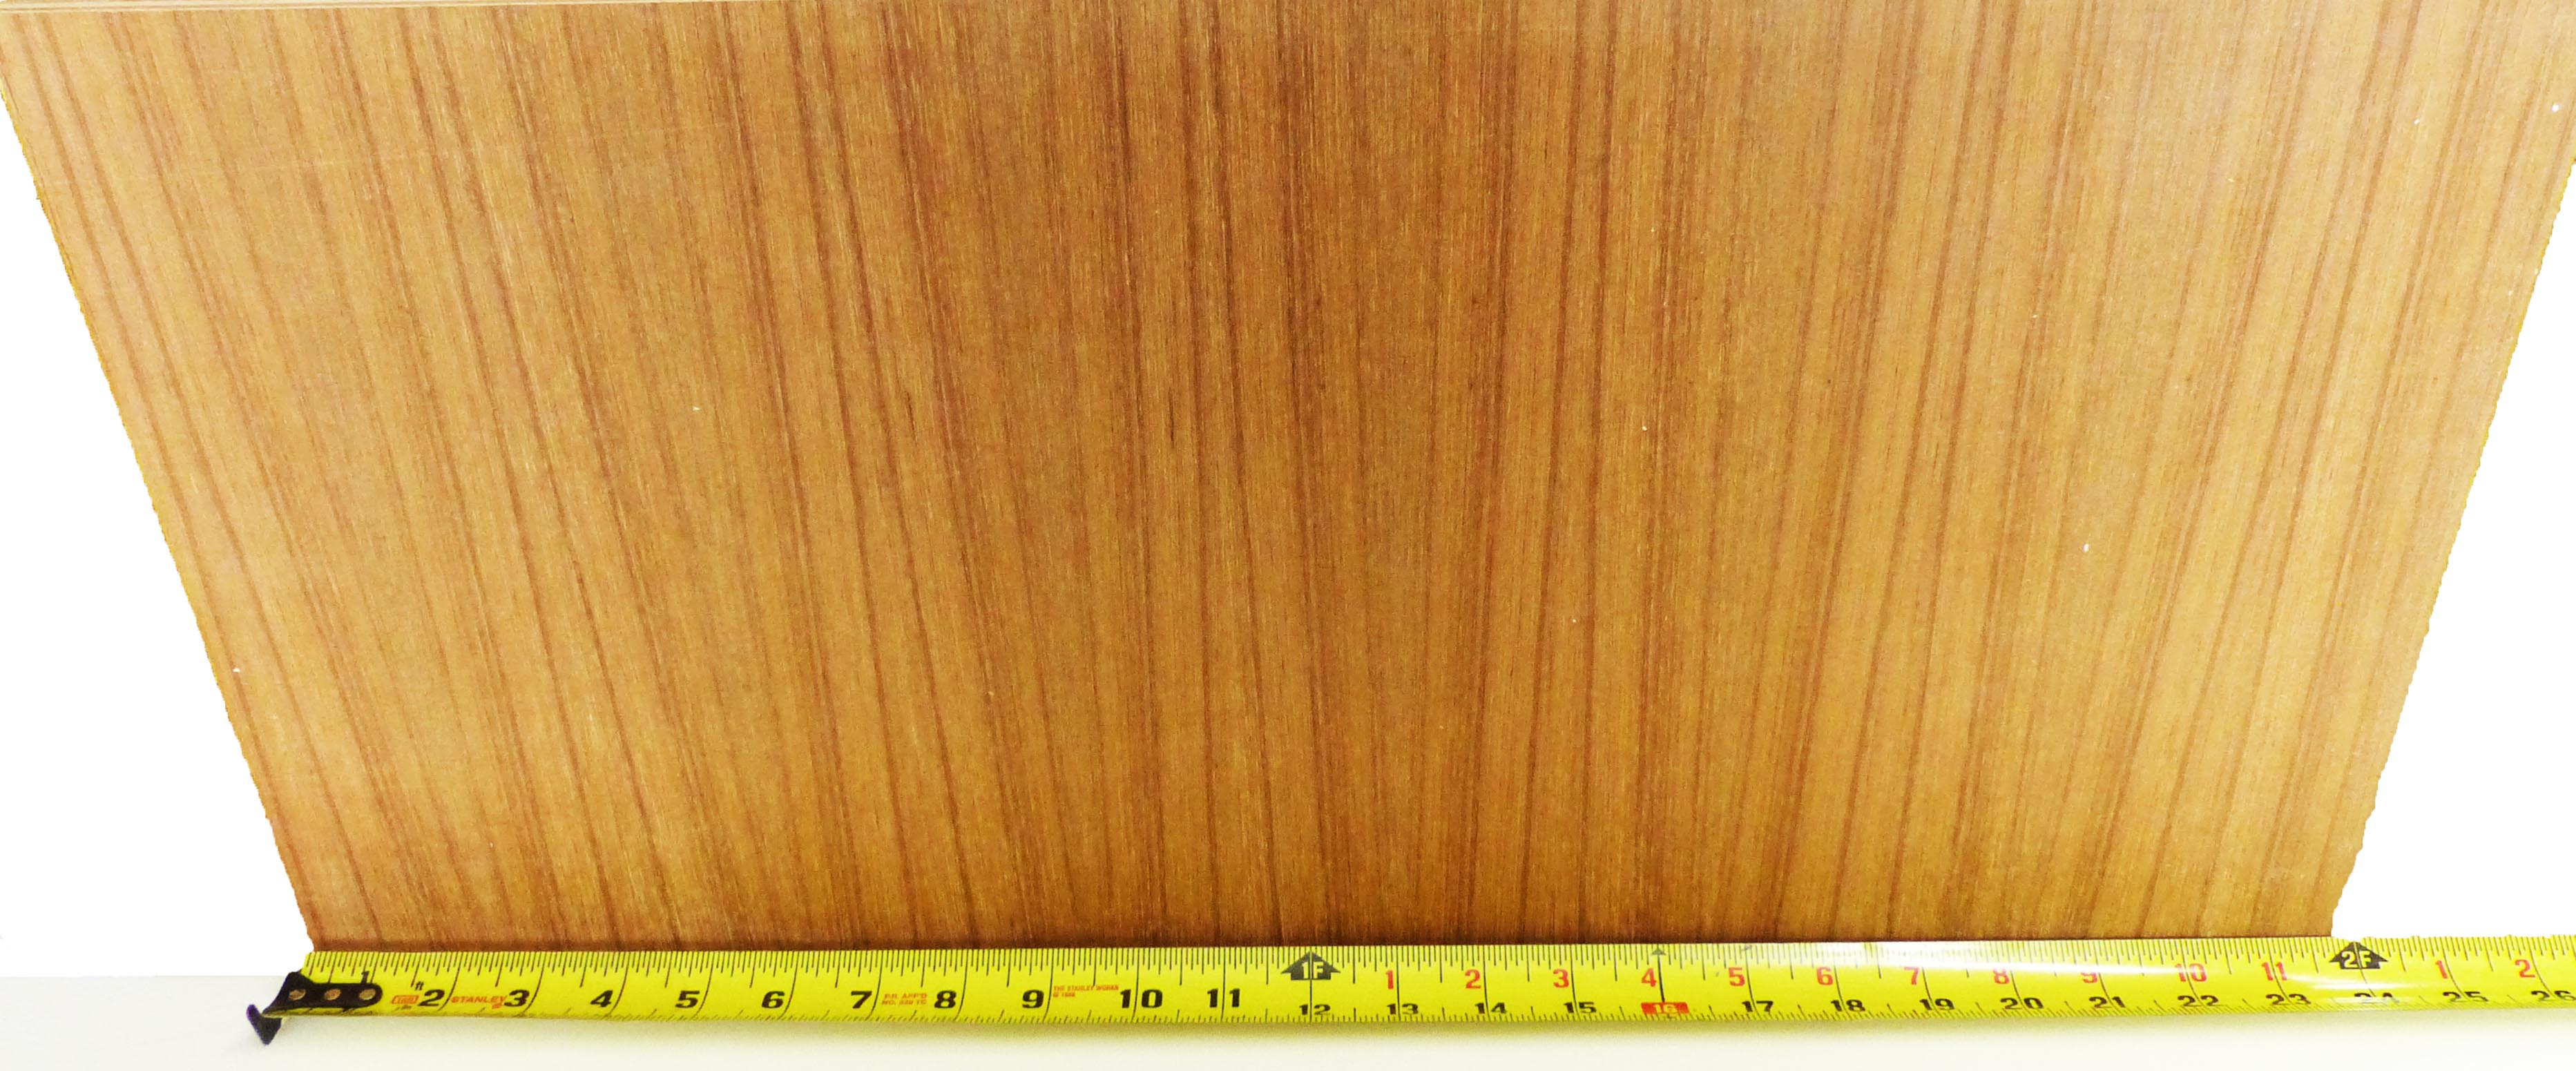 Teak Veneer Plywood Project Panels 12 Quot X24 Quot 1 8 Quot To 3